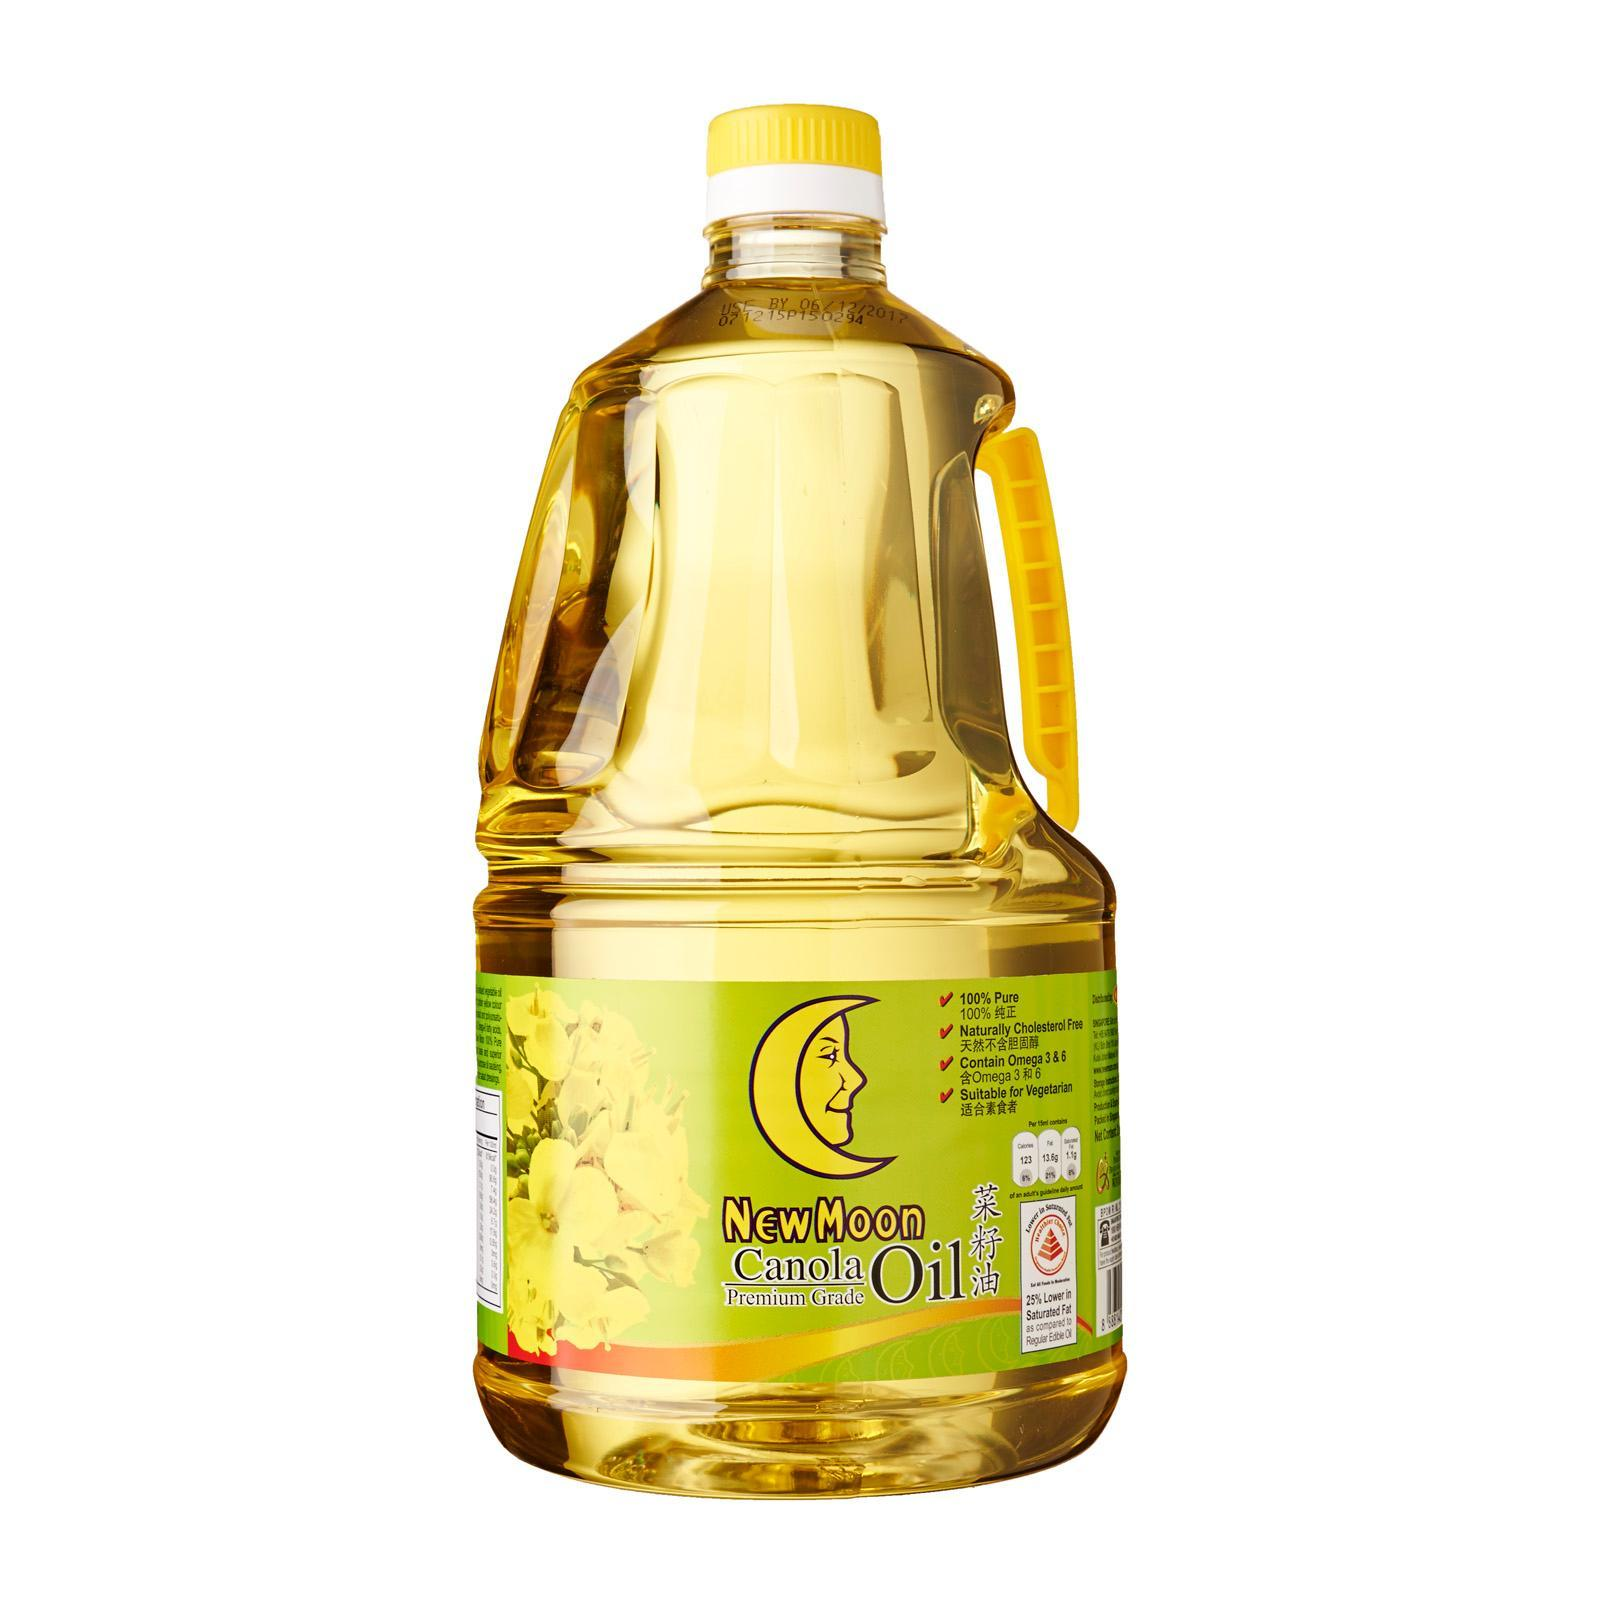 New Moon Premium Canola Oil By Redmart.